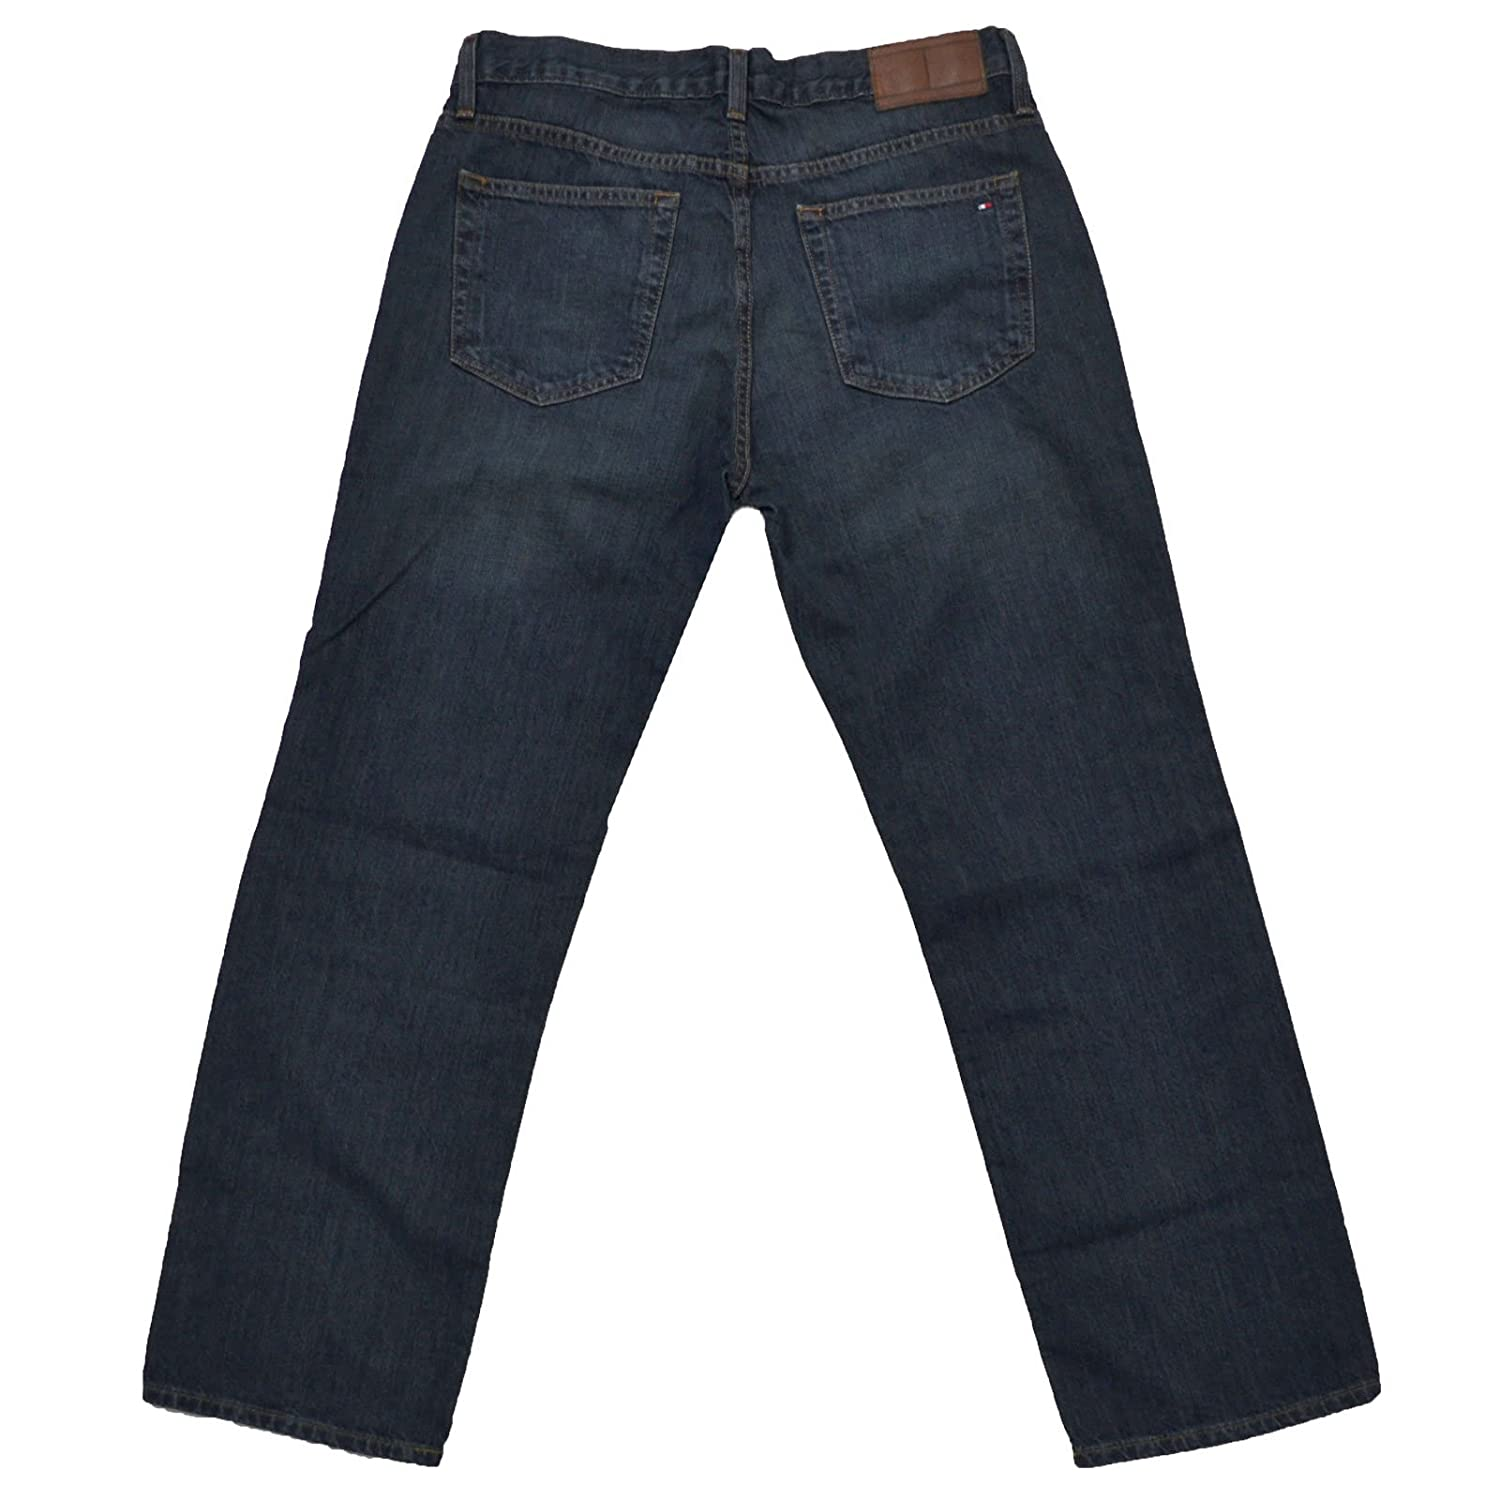 bfc8535b Tommy Hilfiger Mens Relaxed Fit Jeans: Amazon.ca: Clothing & Accessories